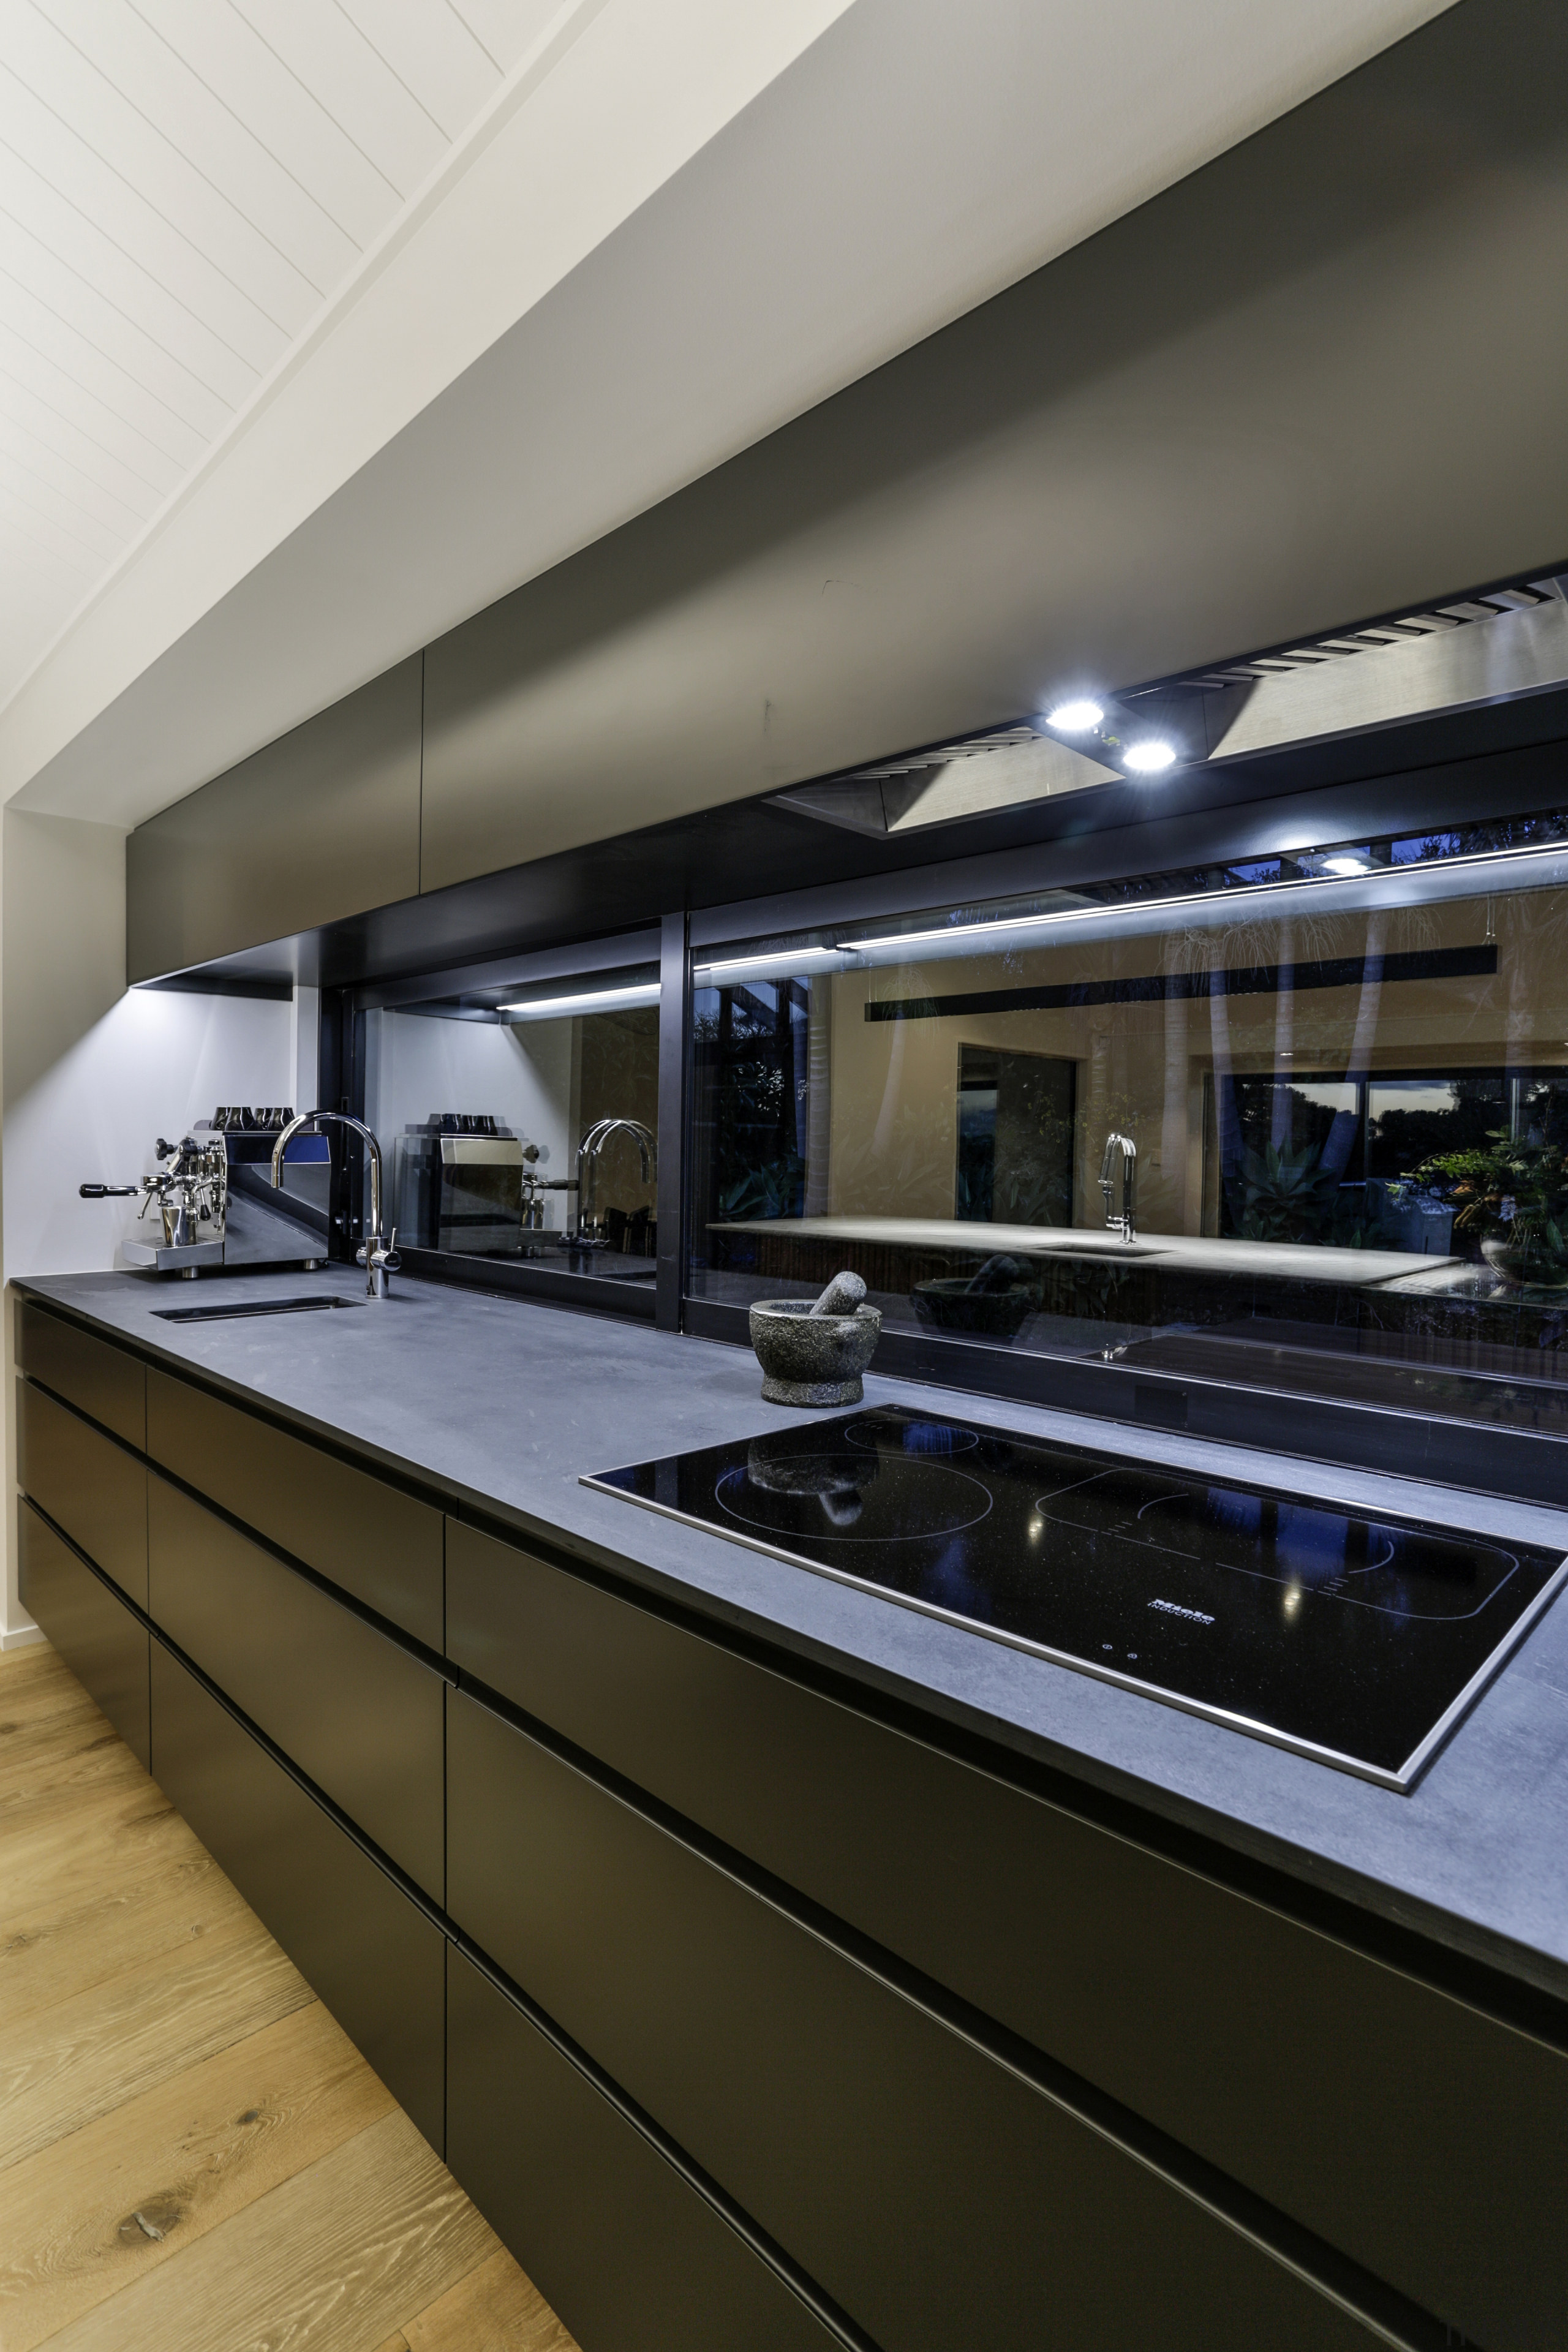 Engineered wood floors complement the marble, stainless steel gray, black, brown